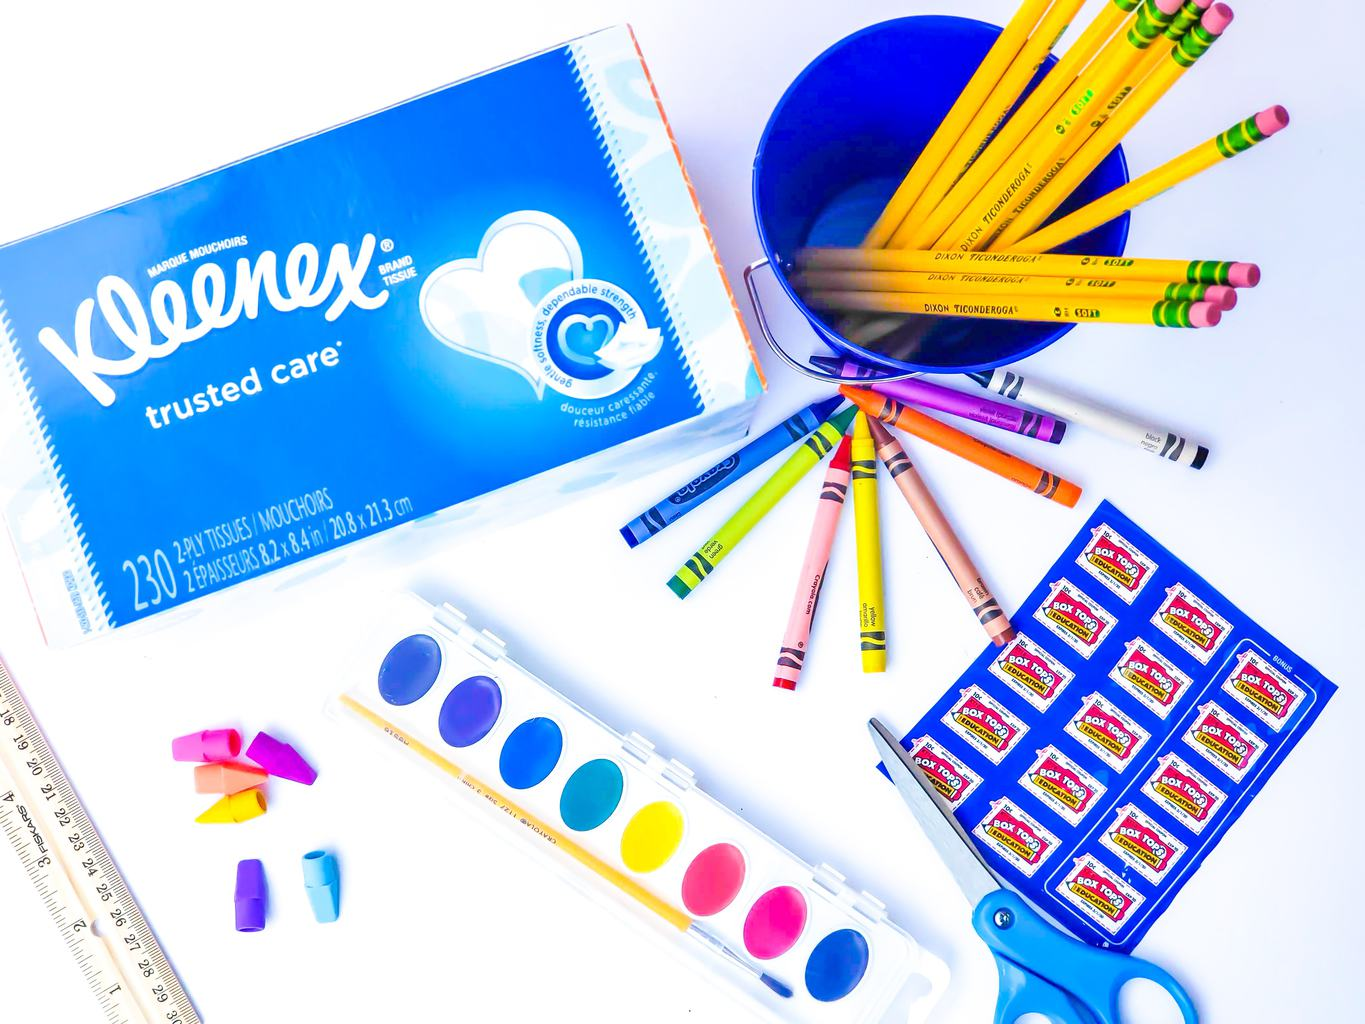 School Supplies, Help Teachers Stock Their Classrooms, Box Tops Helps Provide Classrooms with Much Needed School Supplies, Extra Box Top bonuses with Kleenex